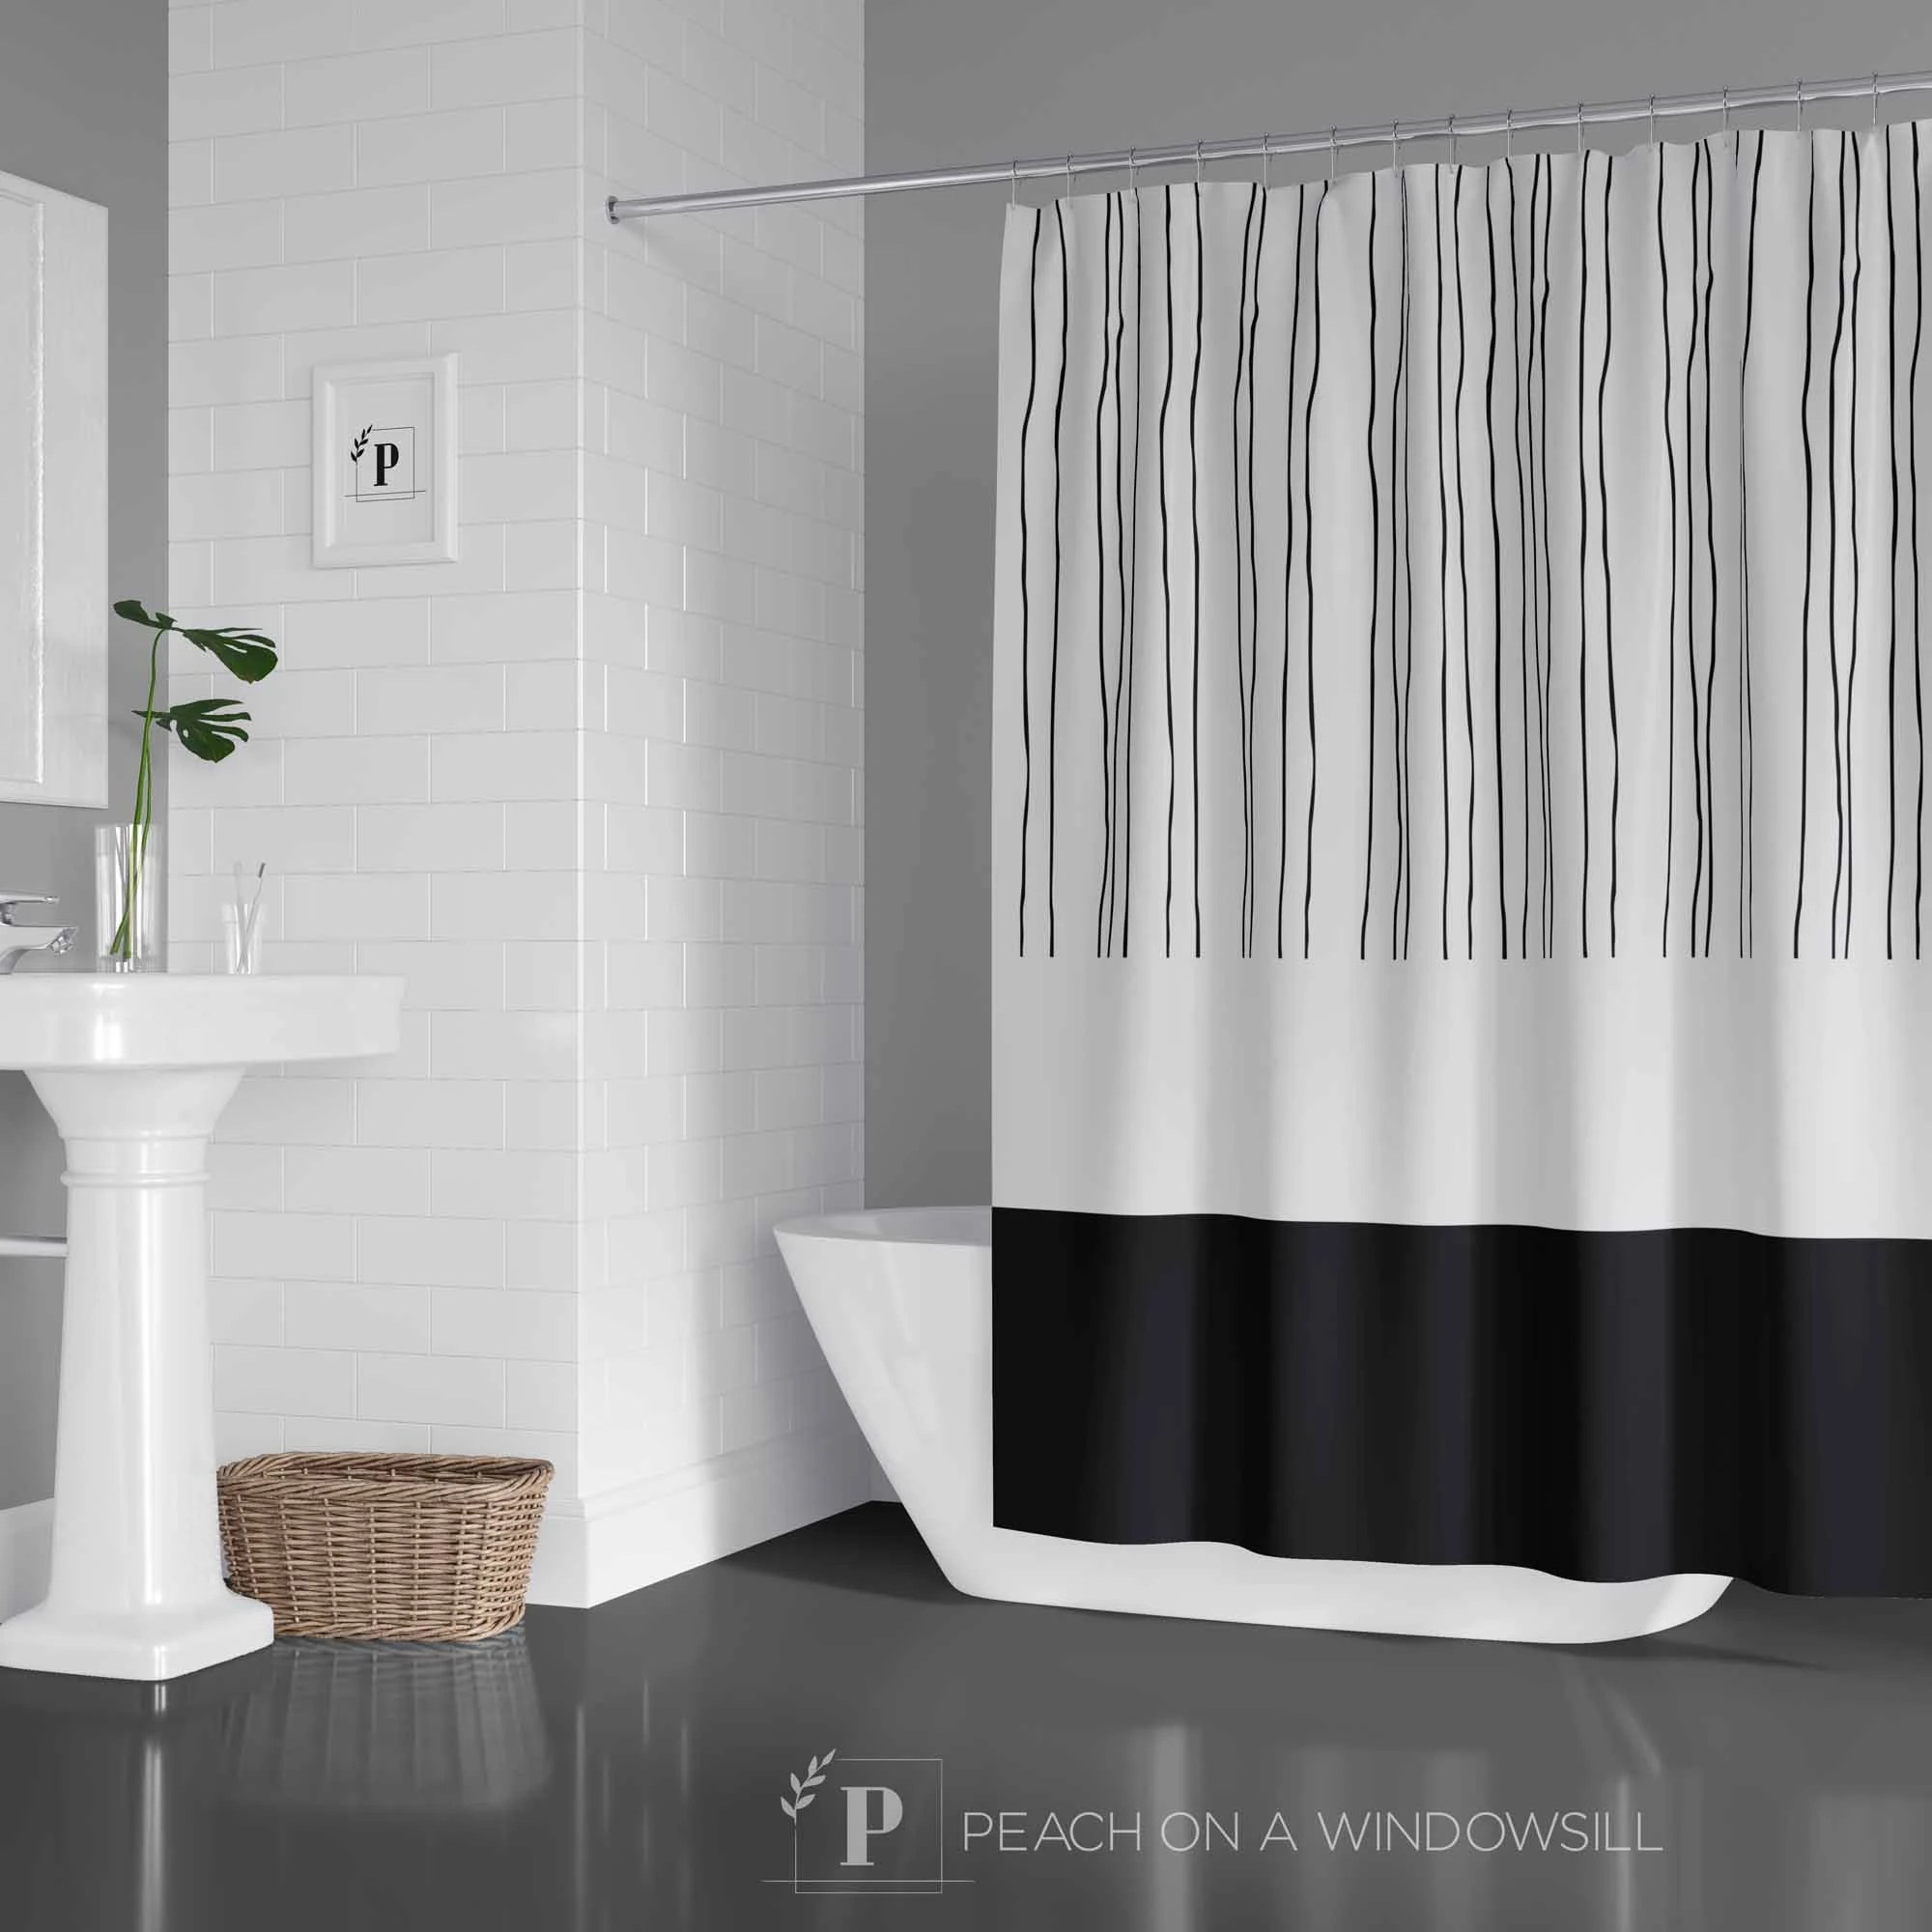 mid century shower curtain abstract pattern design bath curtain in black and white modern bathroom decor